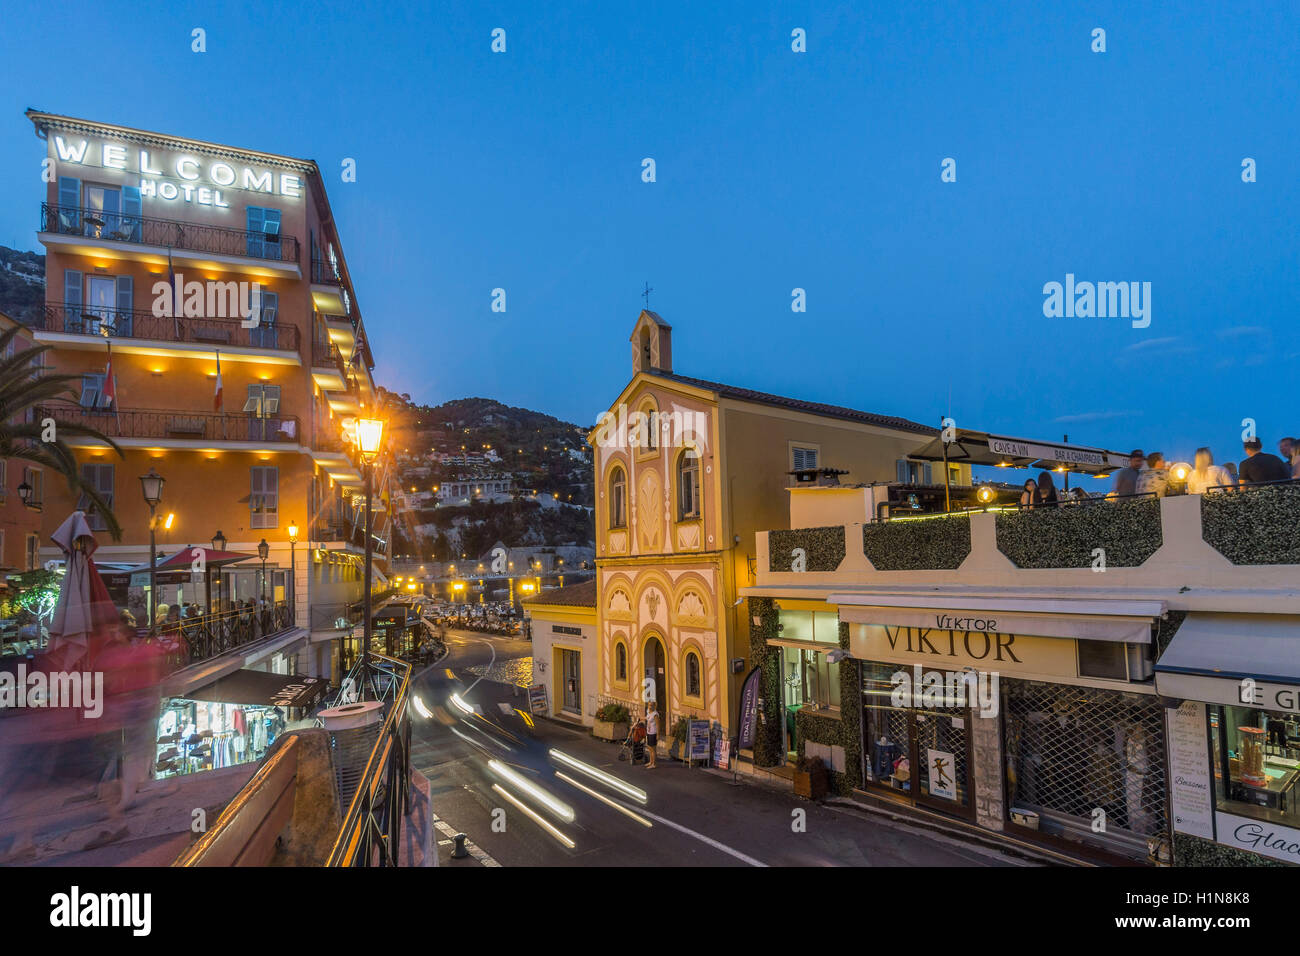 Villefranche sur mer, Welcome Hotel, Jean Cocteau chapel,  Cote d Azur, South of France Stock Photo